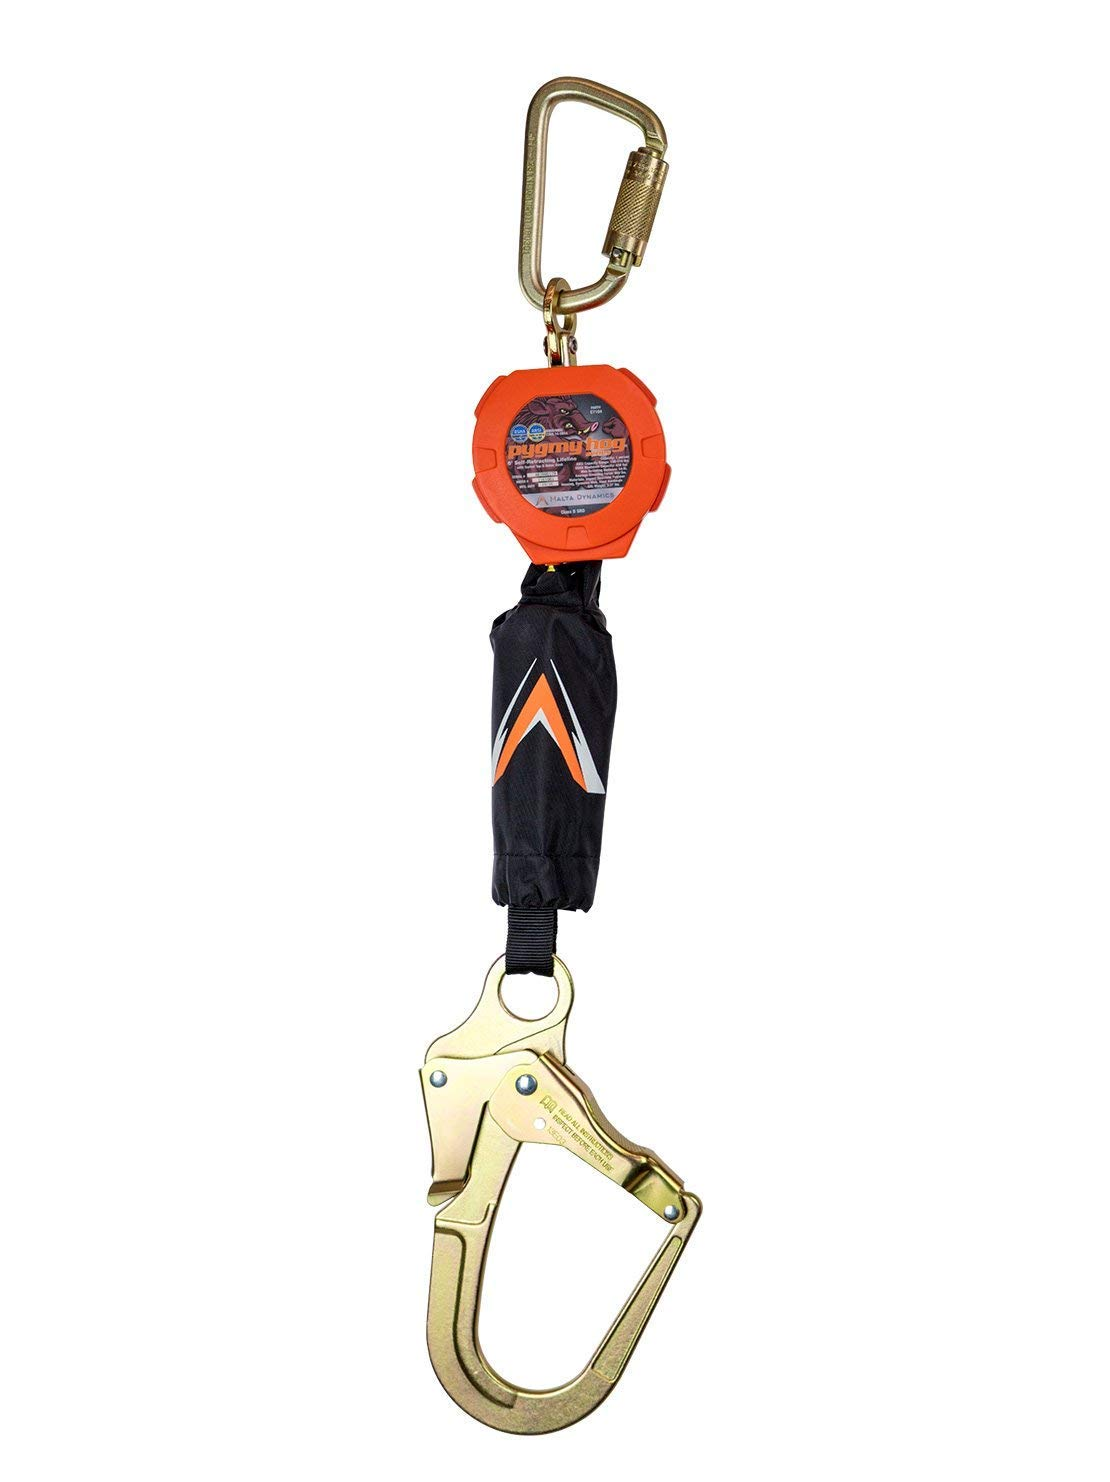 Pygmy Hog 6' Self-Retracting Lifeline with Rebar Hook, OSHA/ANSI Compliant by Malta Dynamics